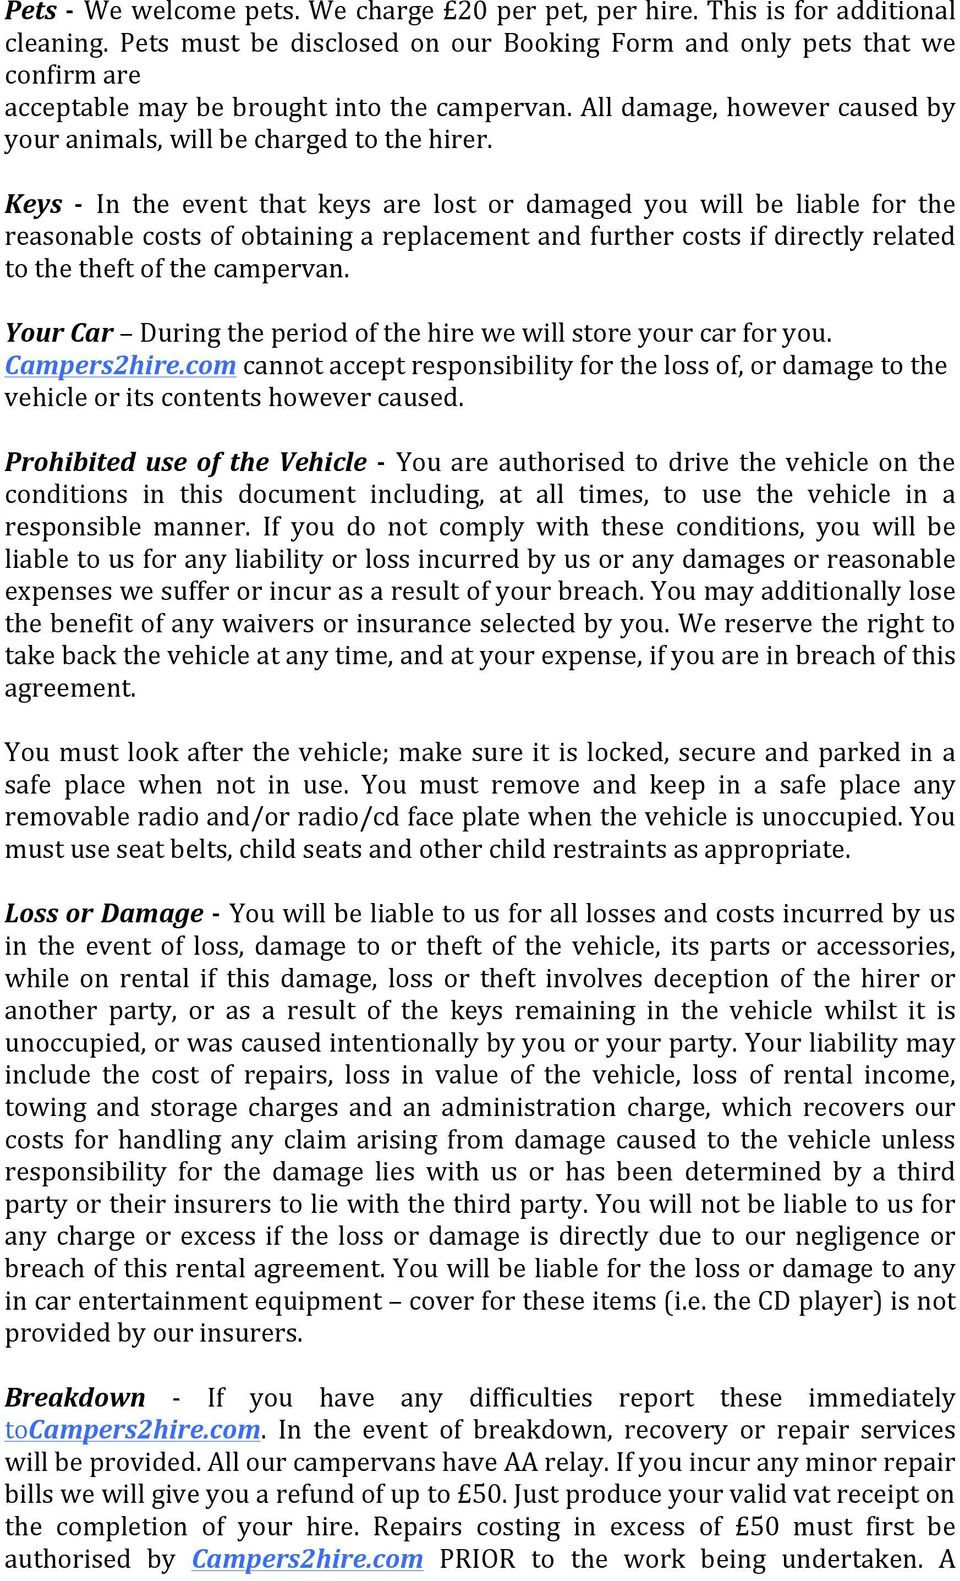 Keys - In the event that keys are lost or damaged you will be liable for the reasonable costs of obtaining a replacement and further costs if directly related to the theft of the campervan.